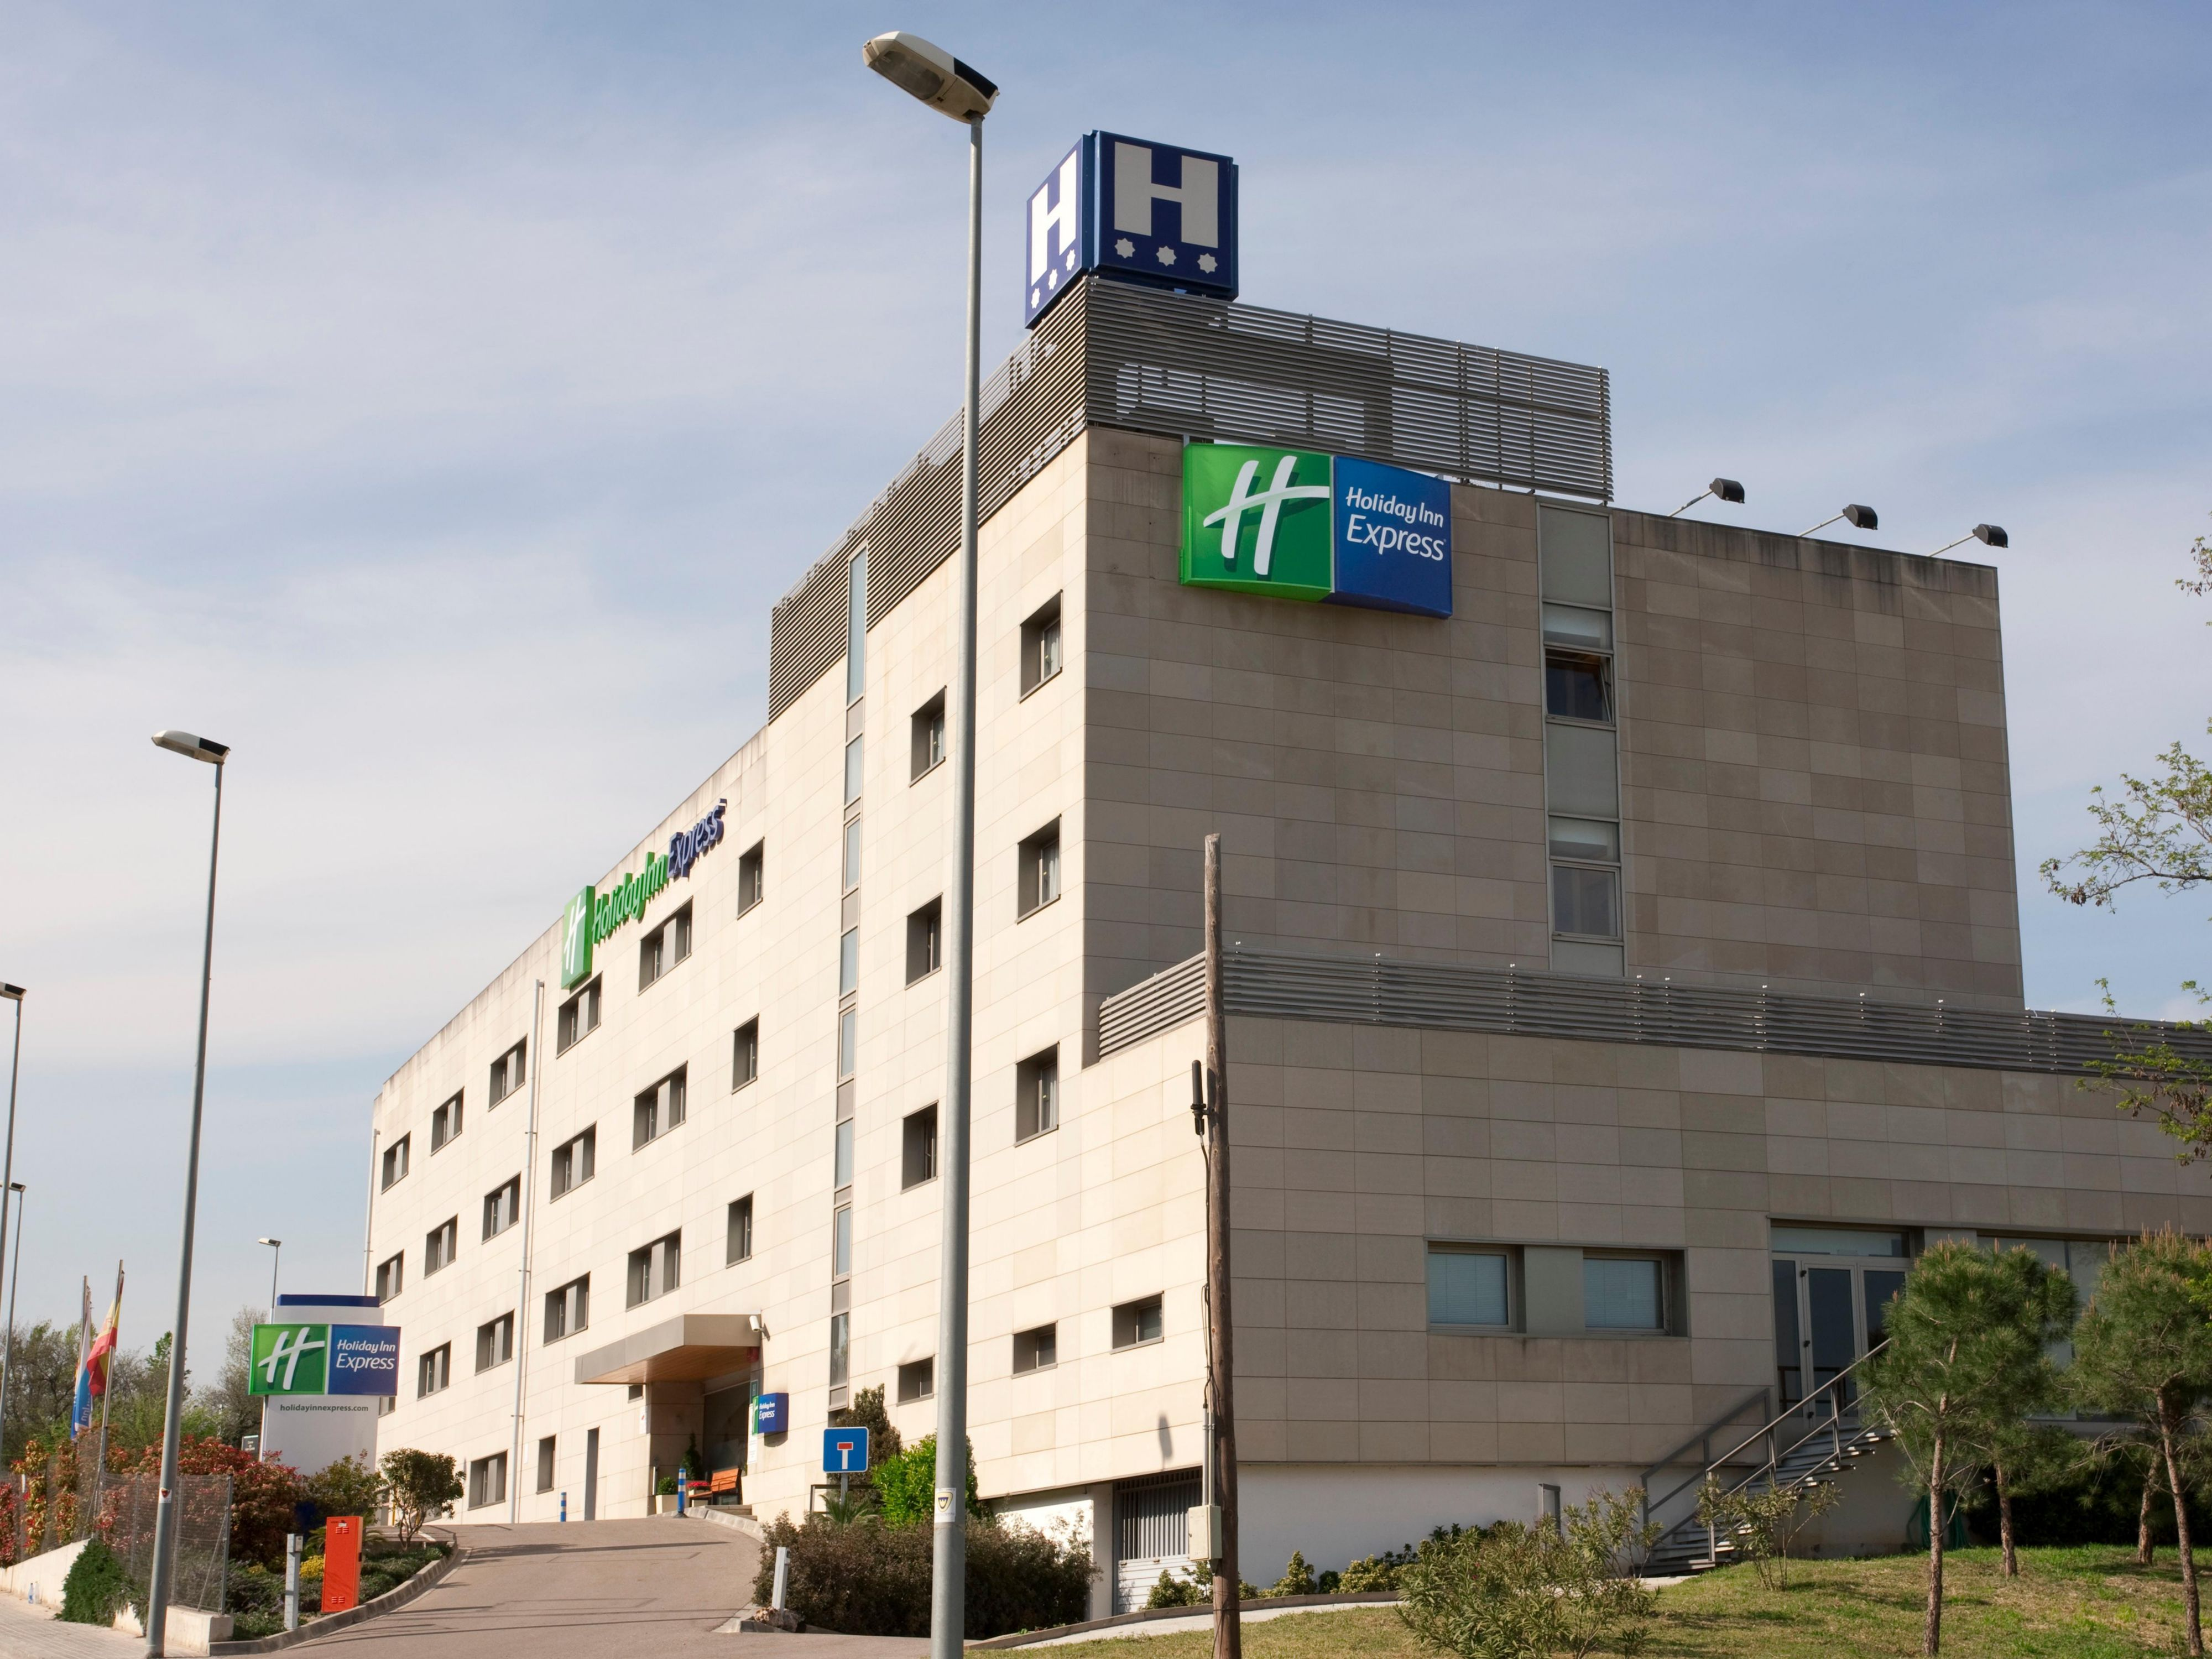 Welcome to Holiday Inn Express Montmelo